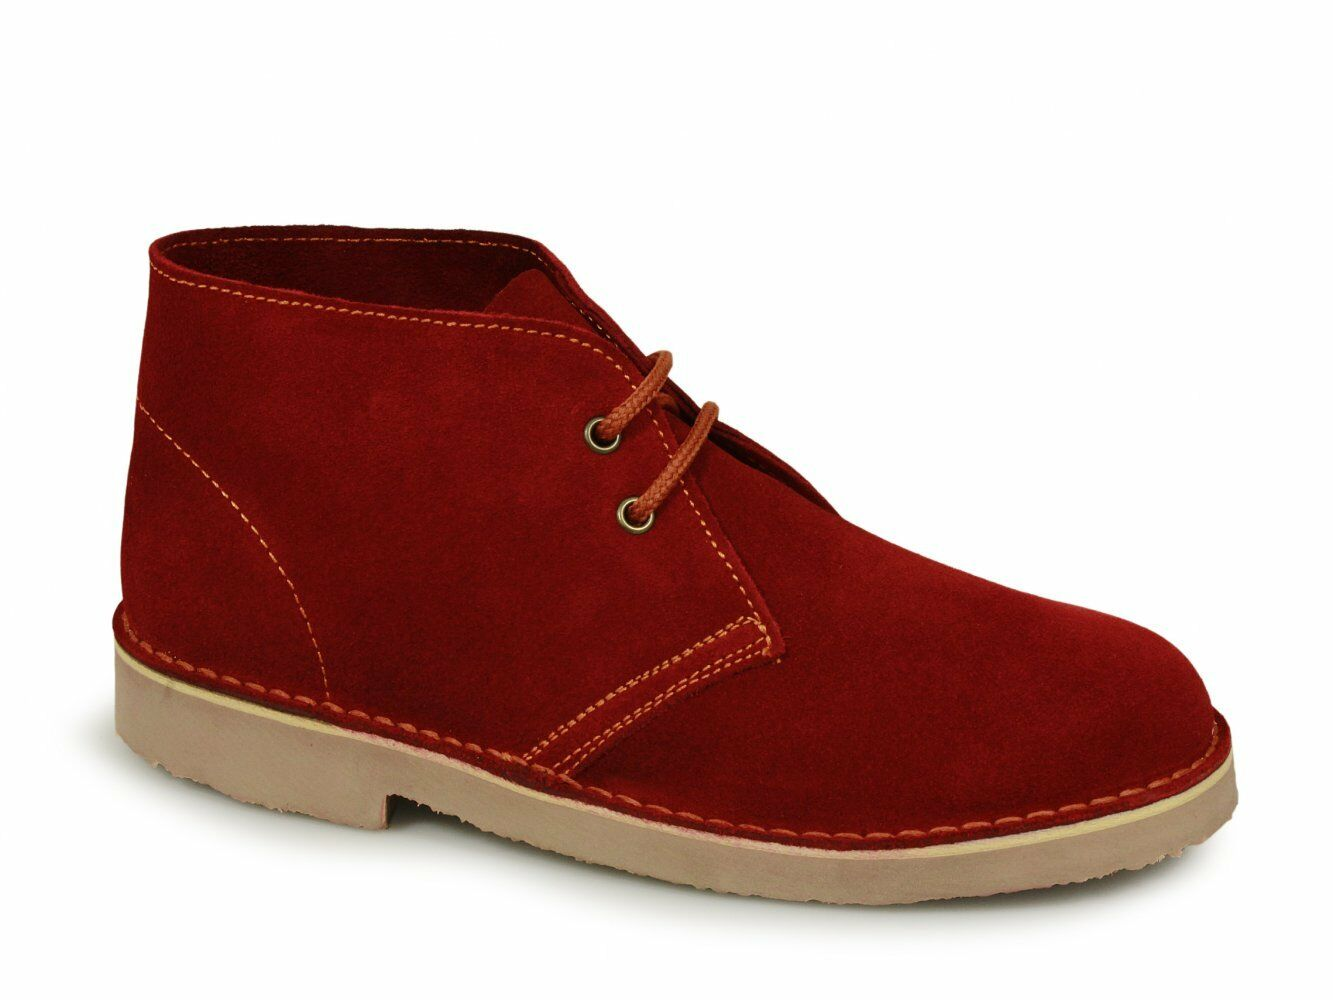 Roamers ORIGINAL Unisex Mens Womens .Soft Suede Leather Lace Up Desert Boots Red